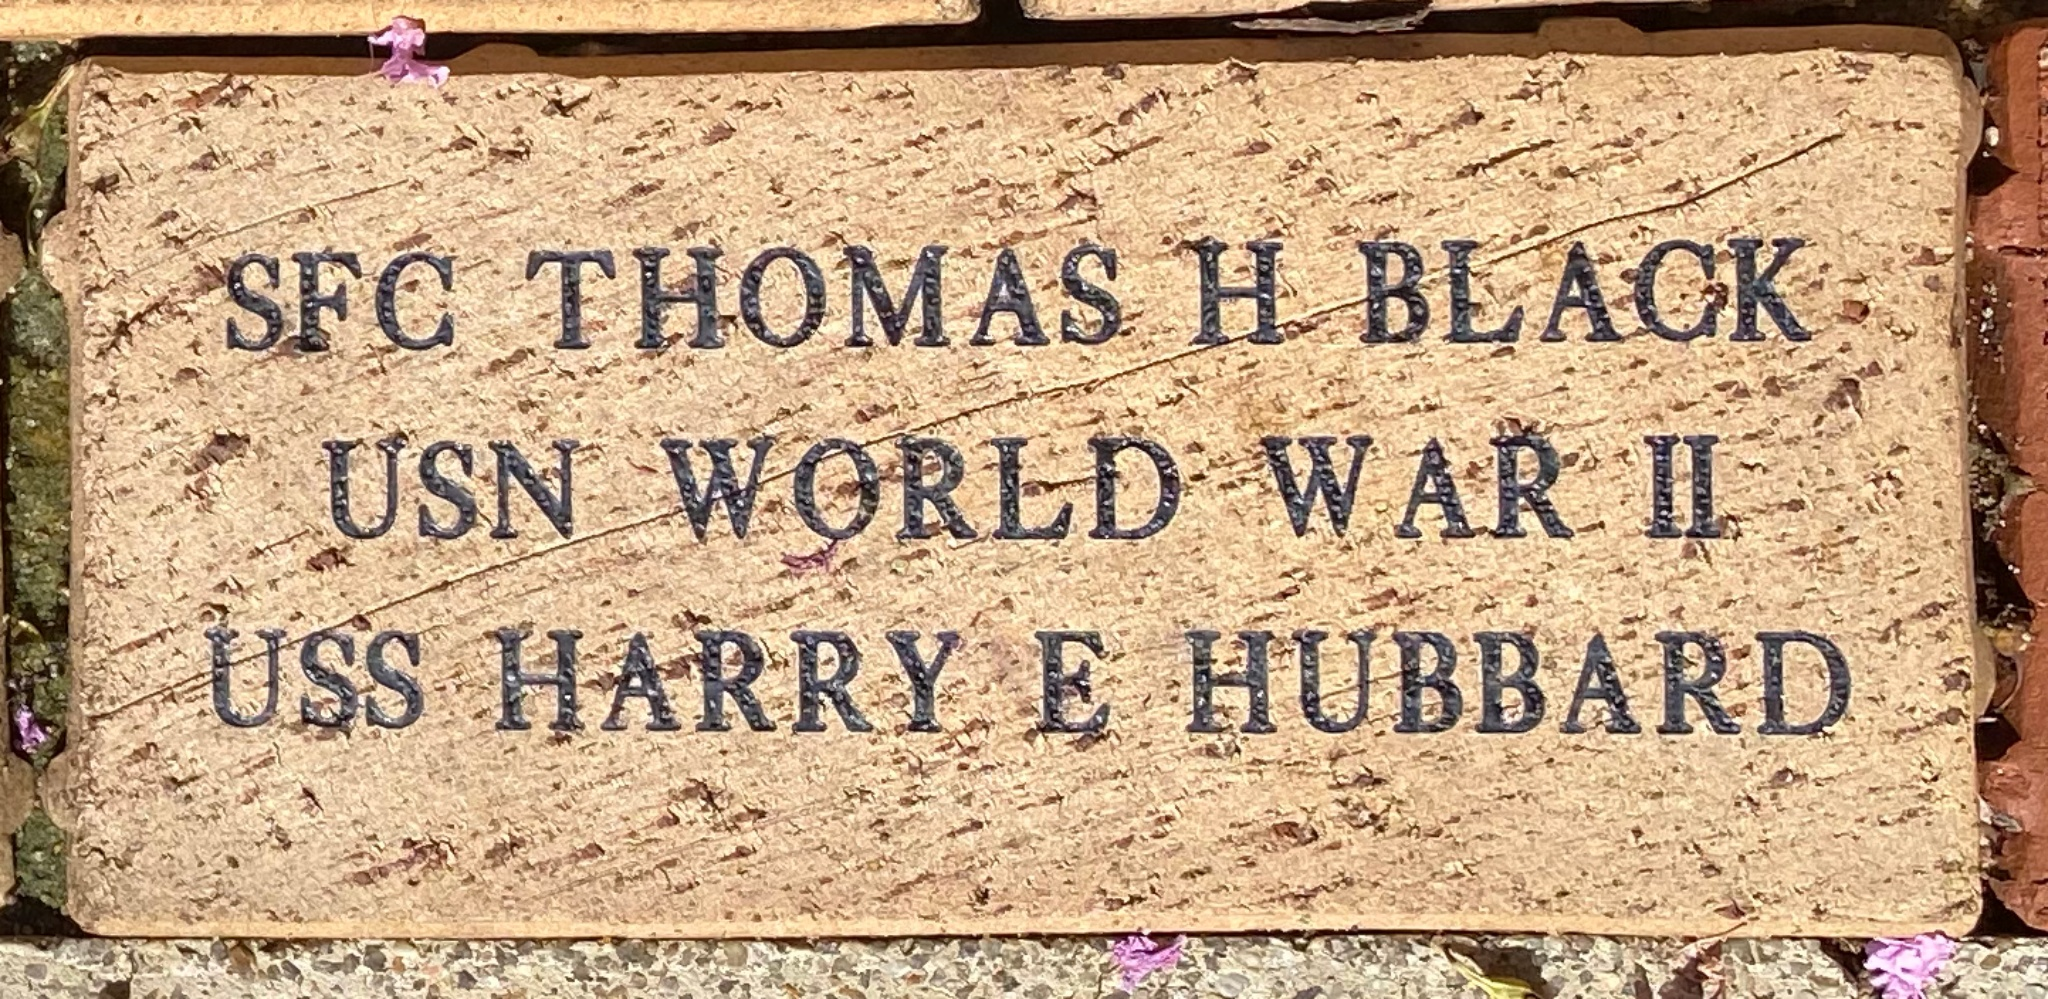 SFC THOMAS H BLACK USN WORLD WAR II USS HARRY E HUBBARD